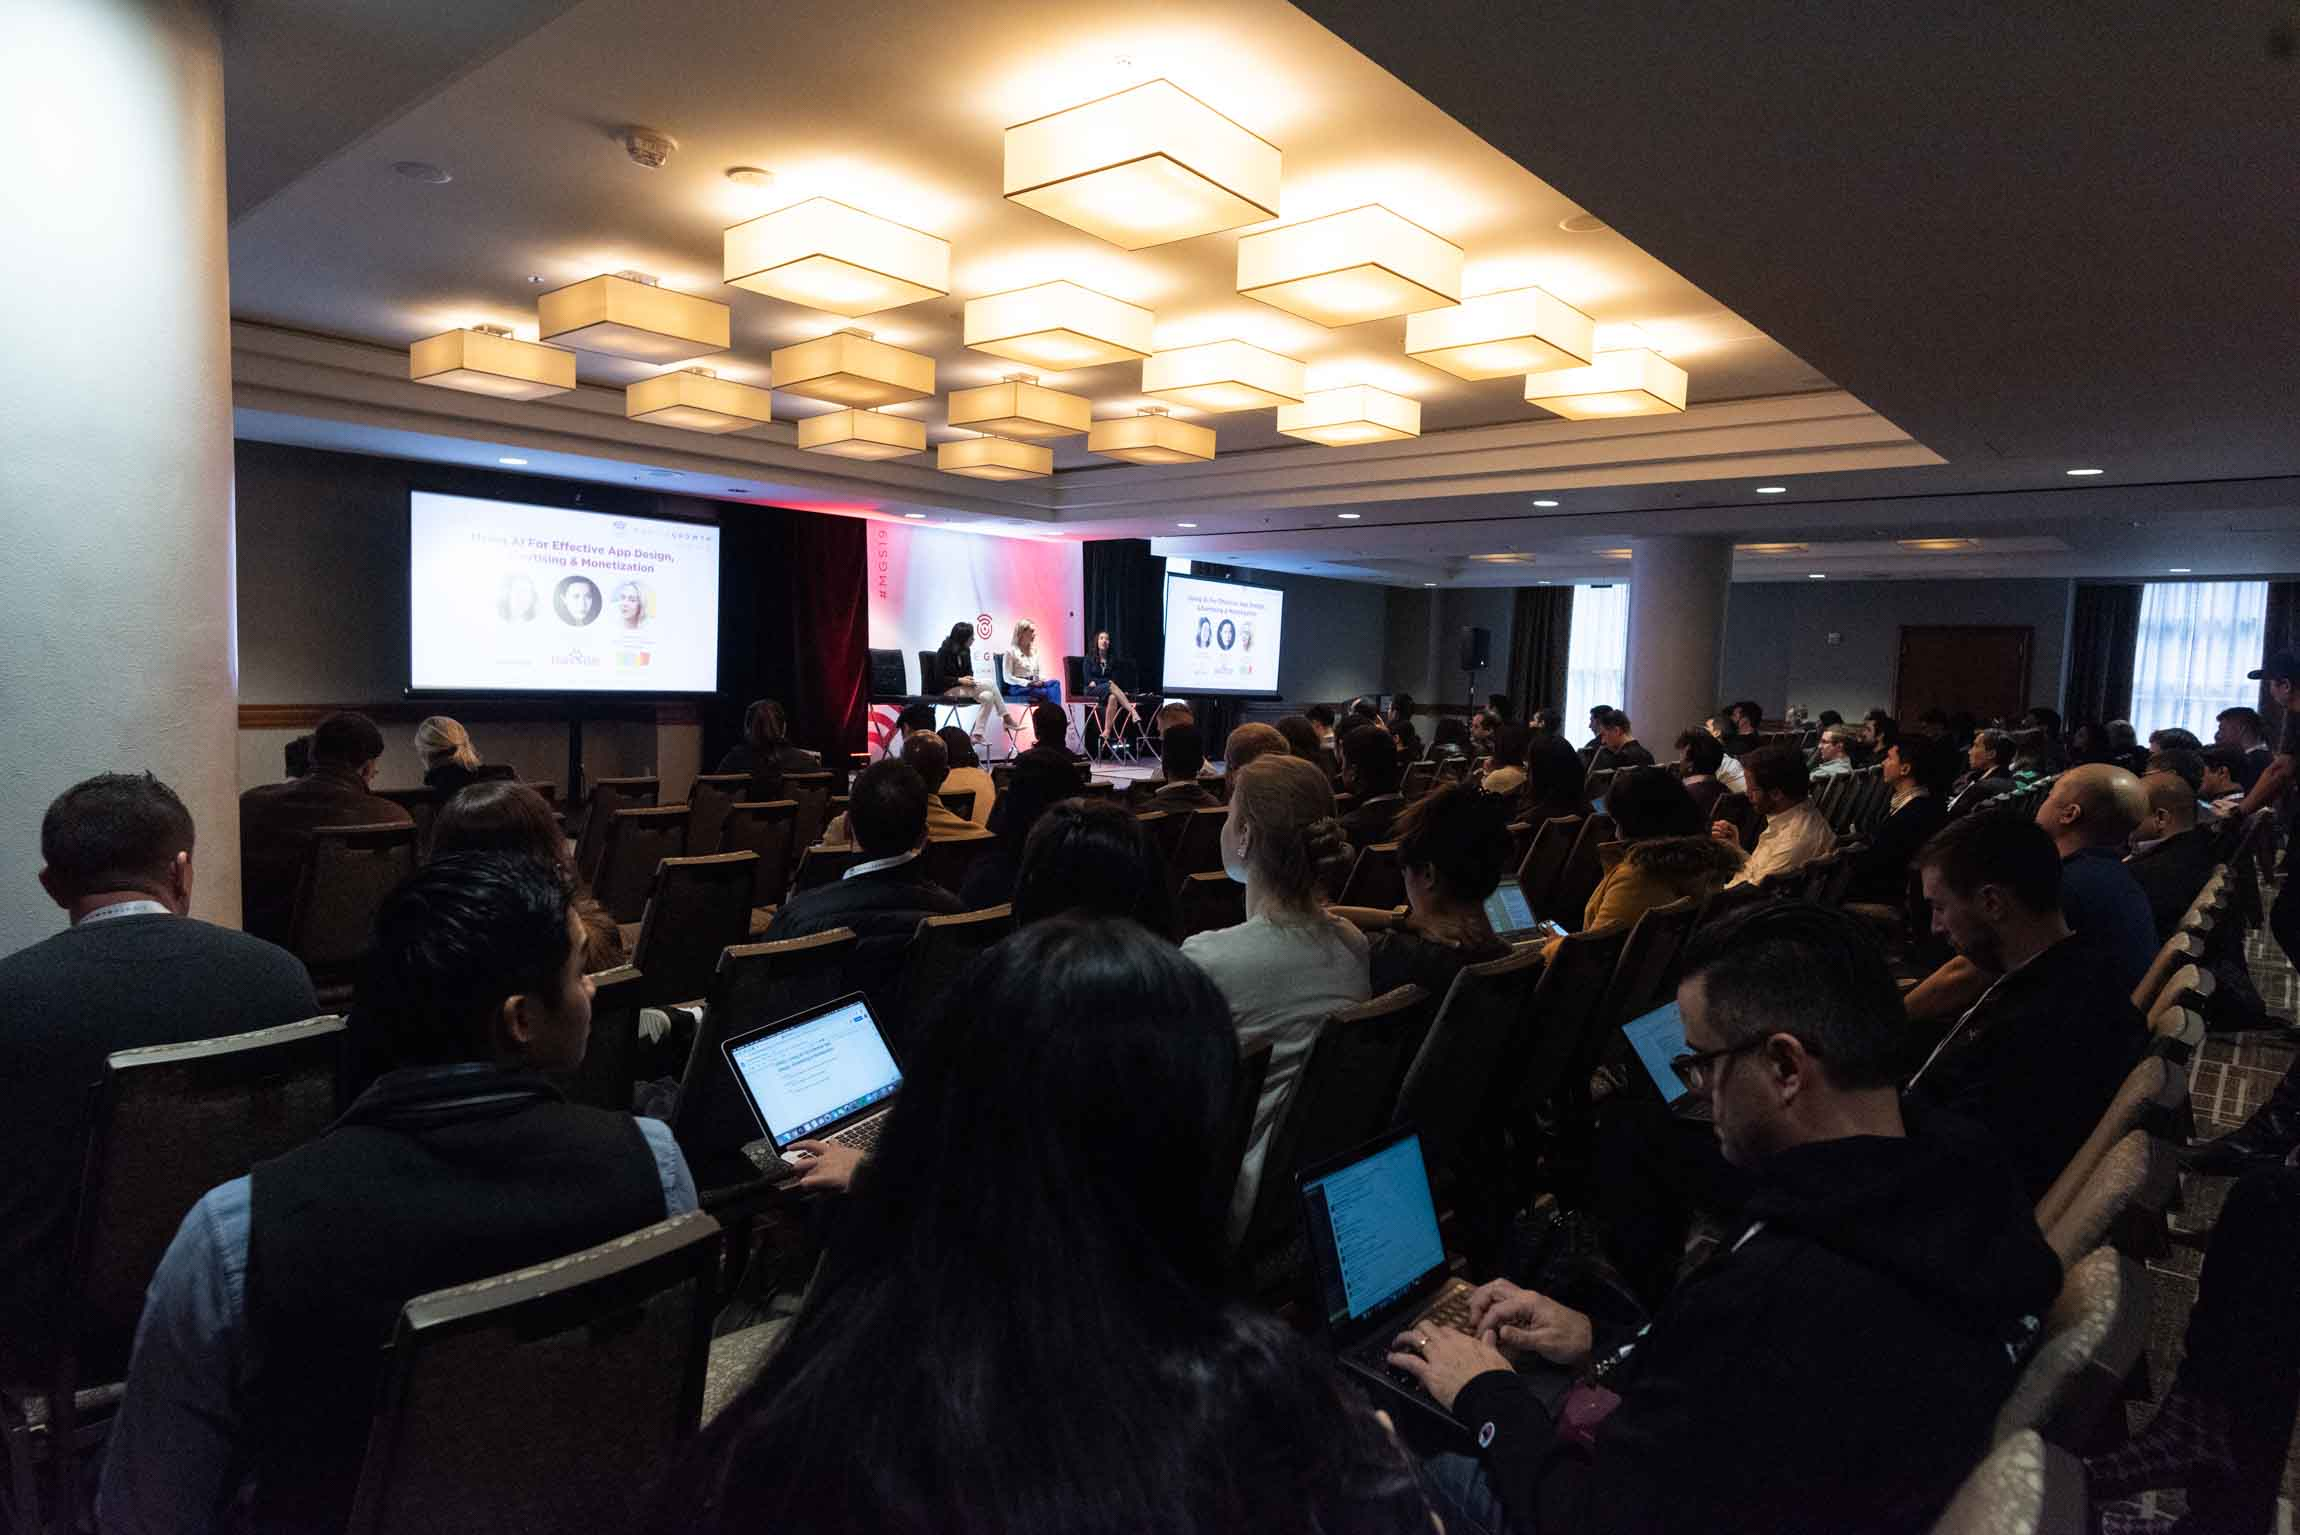 028_mgs2019_sanfrancisco_conference_photography_event.jpg